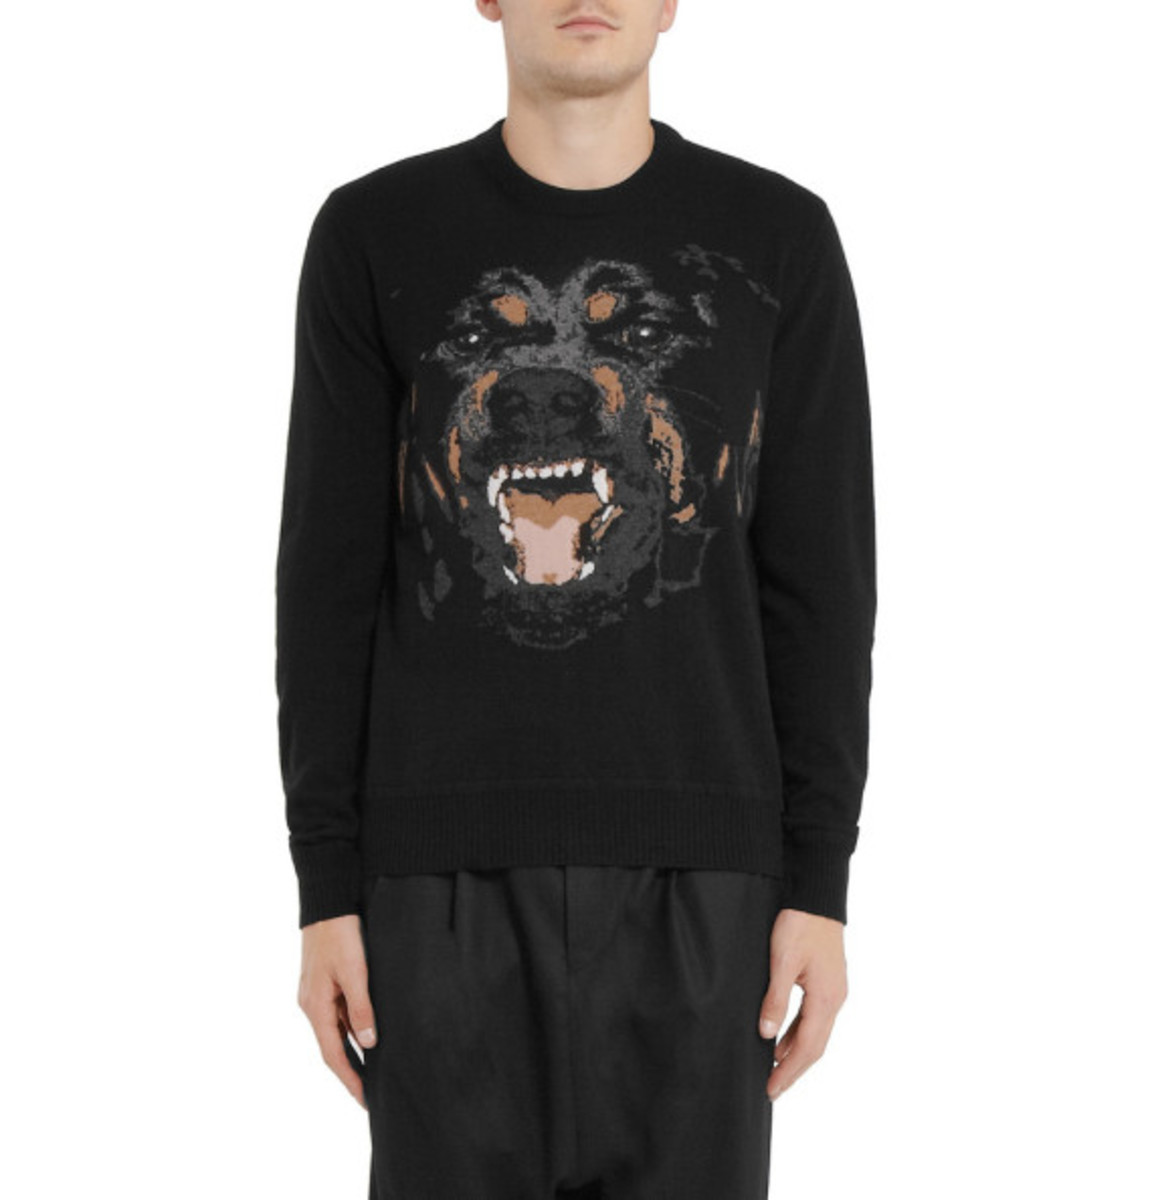 givenchy-rottweiler-intarsia-sweater-02